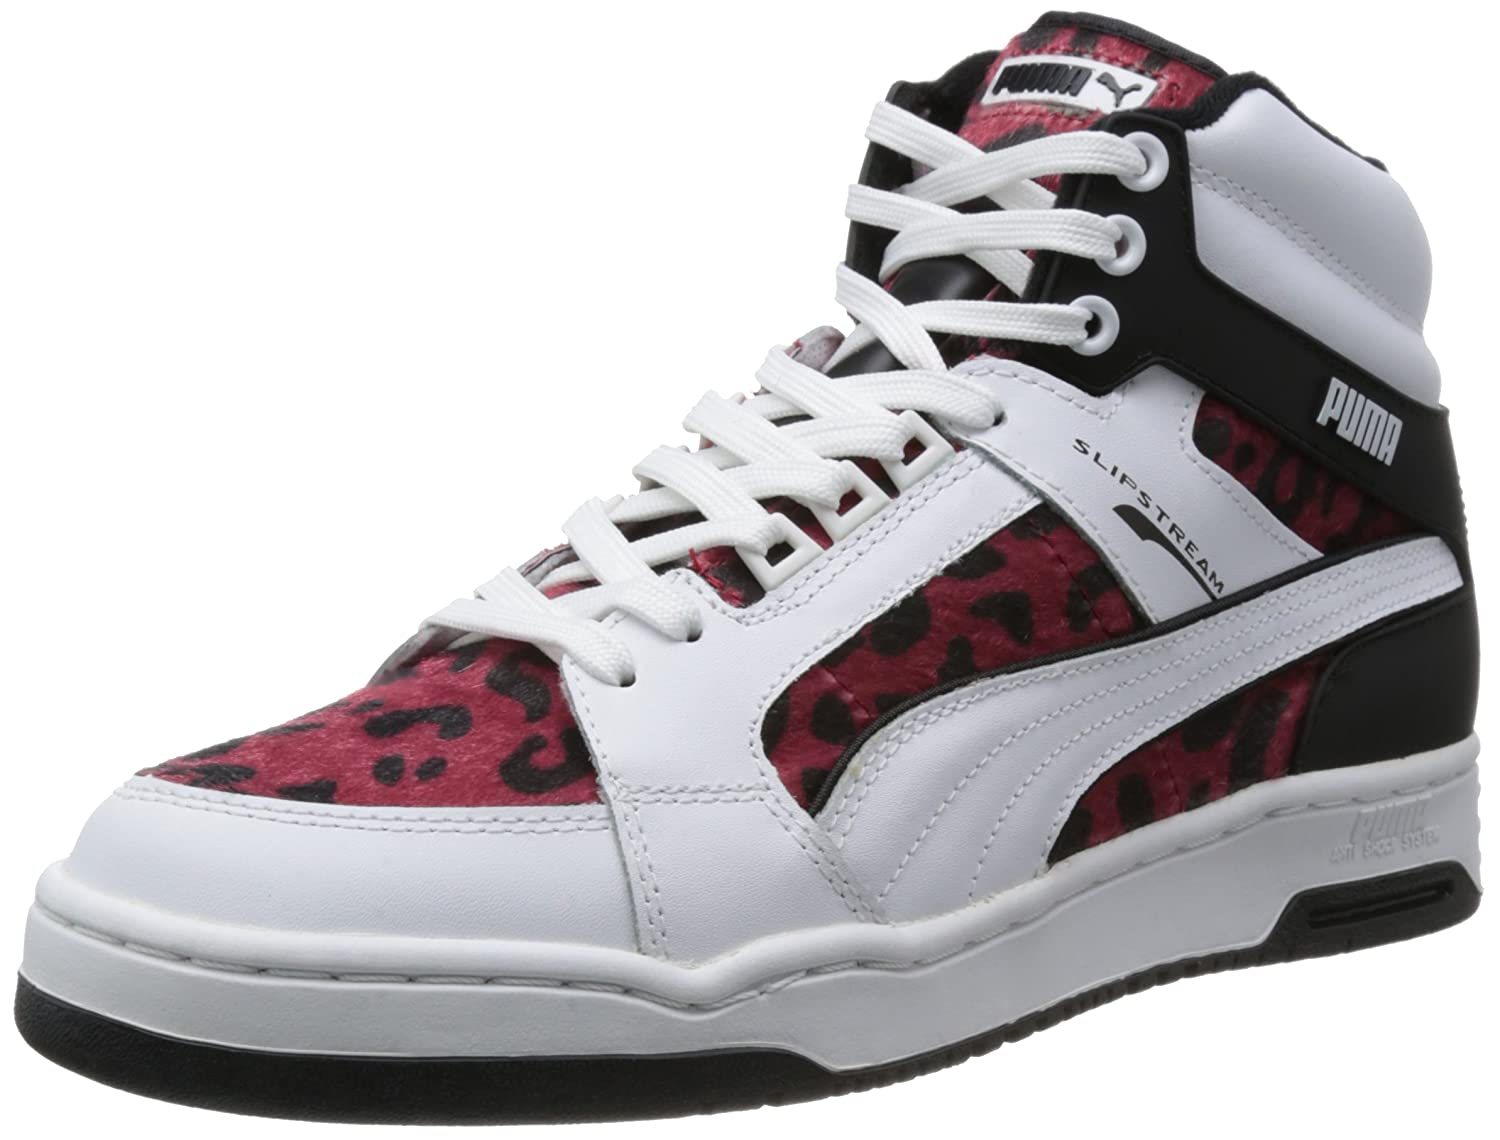 Puma SLIPSTREAM ANML Chaussures Mode Sneakers Unis P4wwAQ